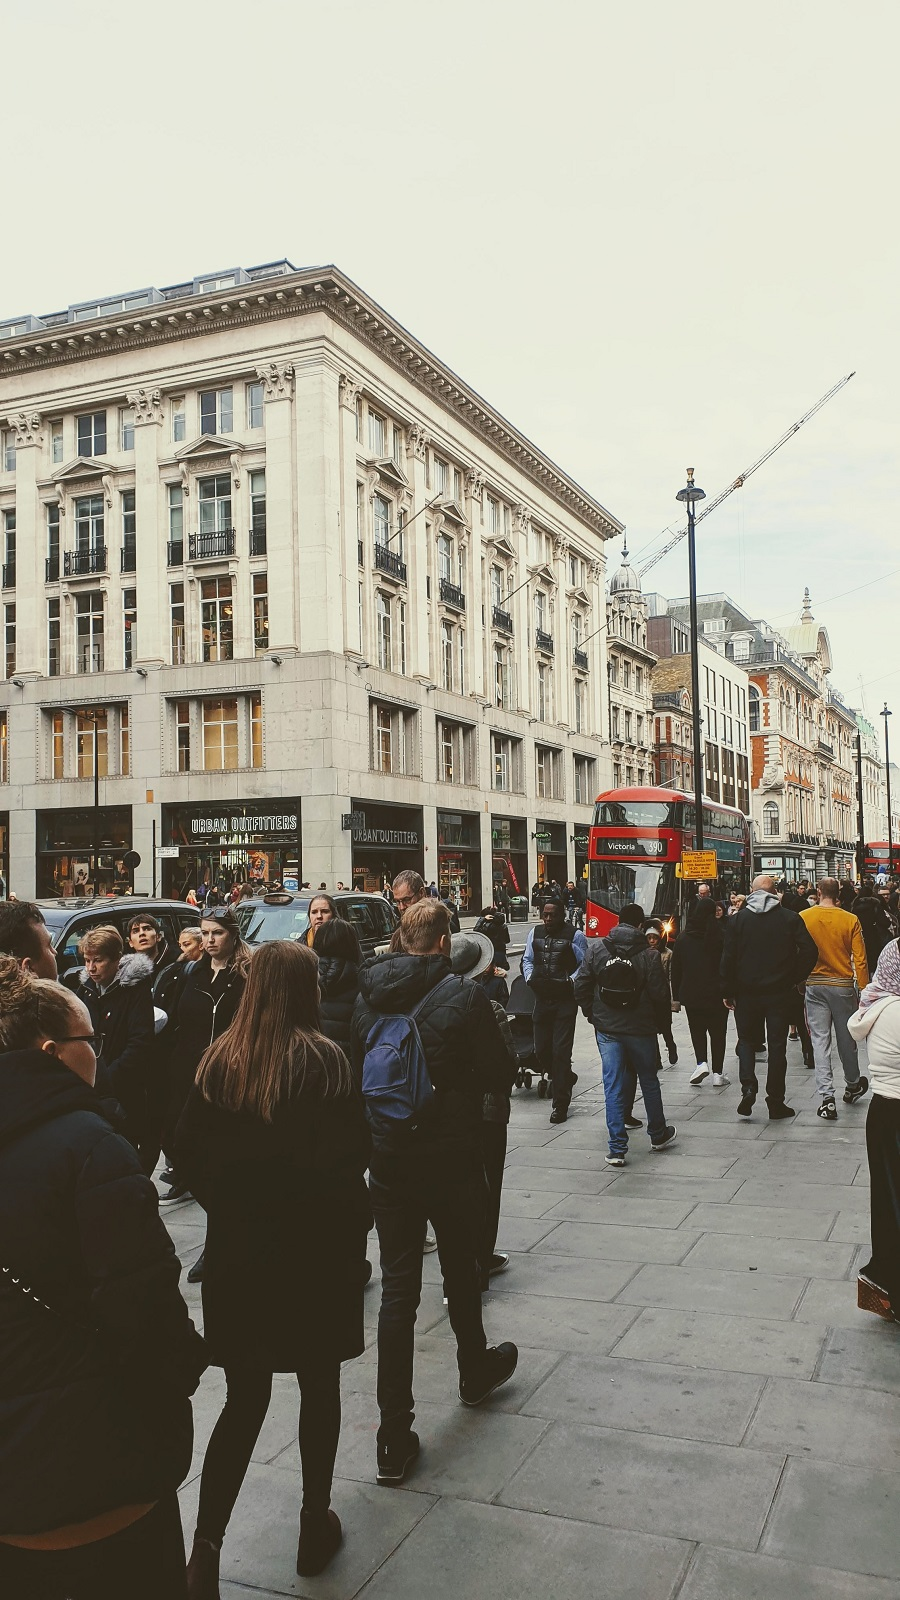 Trip To London In The Name Of Fashion #WeeklyLinkUp